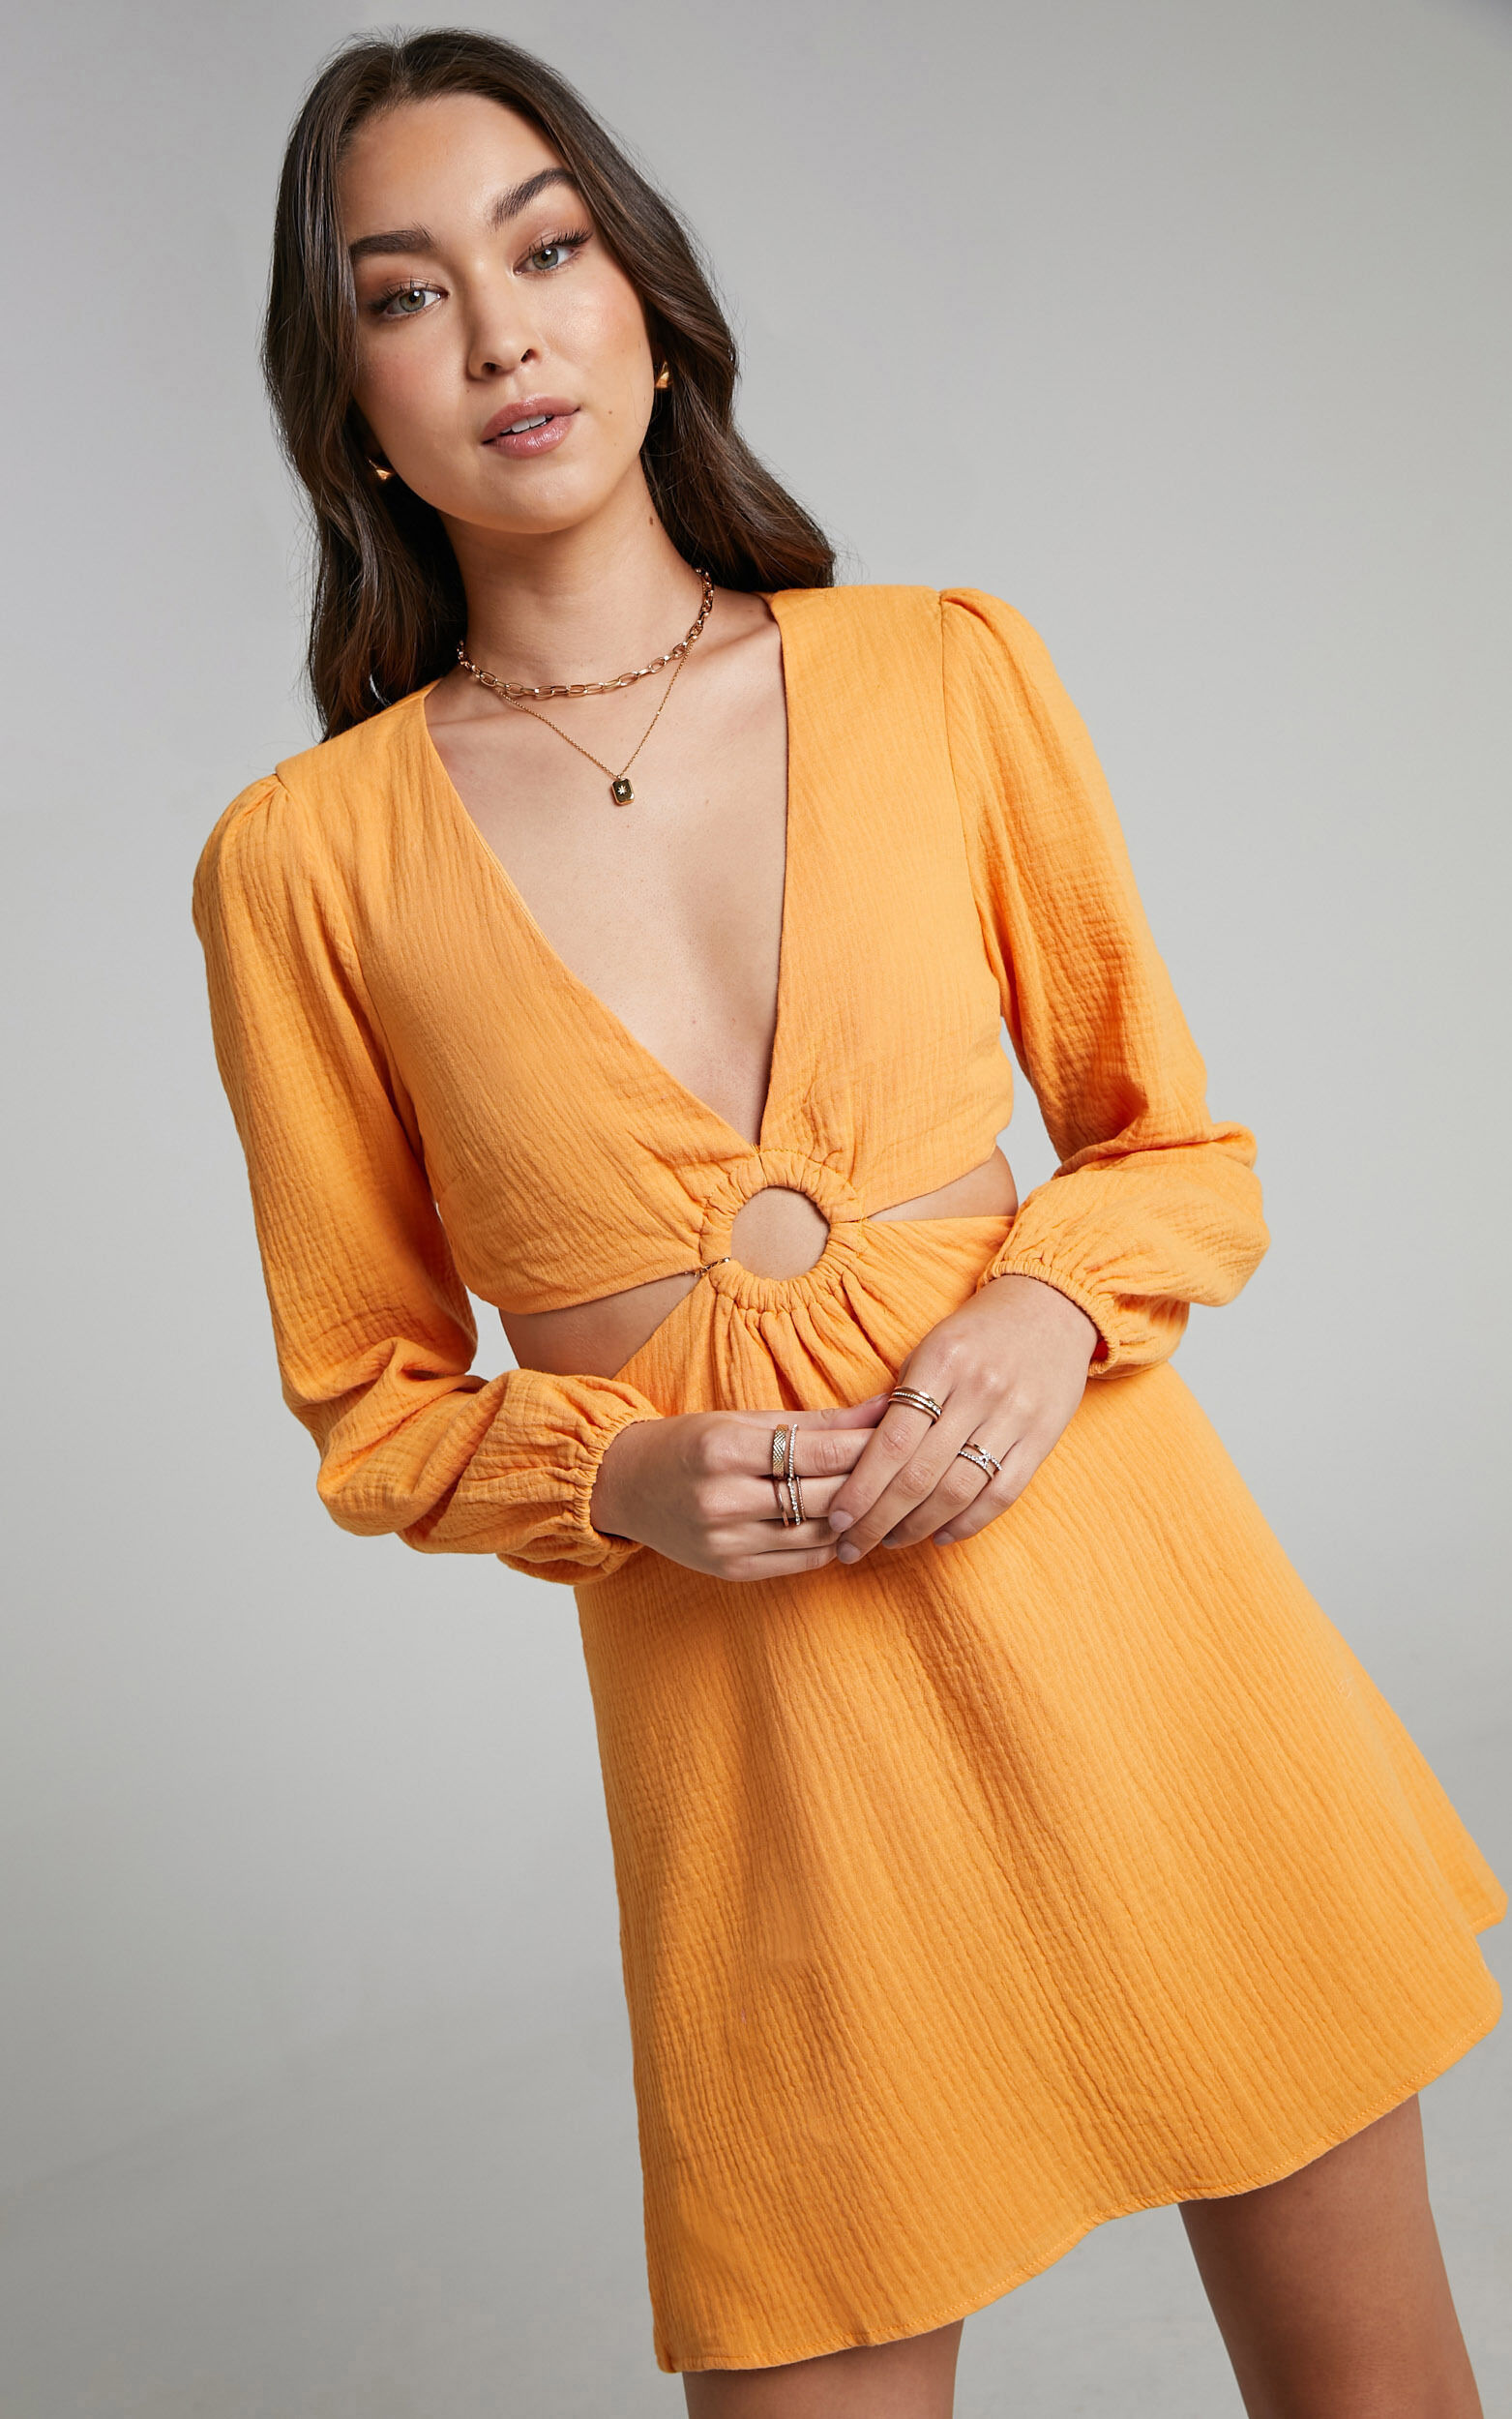 Queeny Side Cutouts Mini Dress in Sherbet - 06, ORG2, super-hi-res image number null